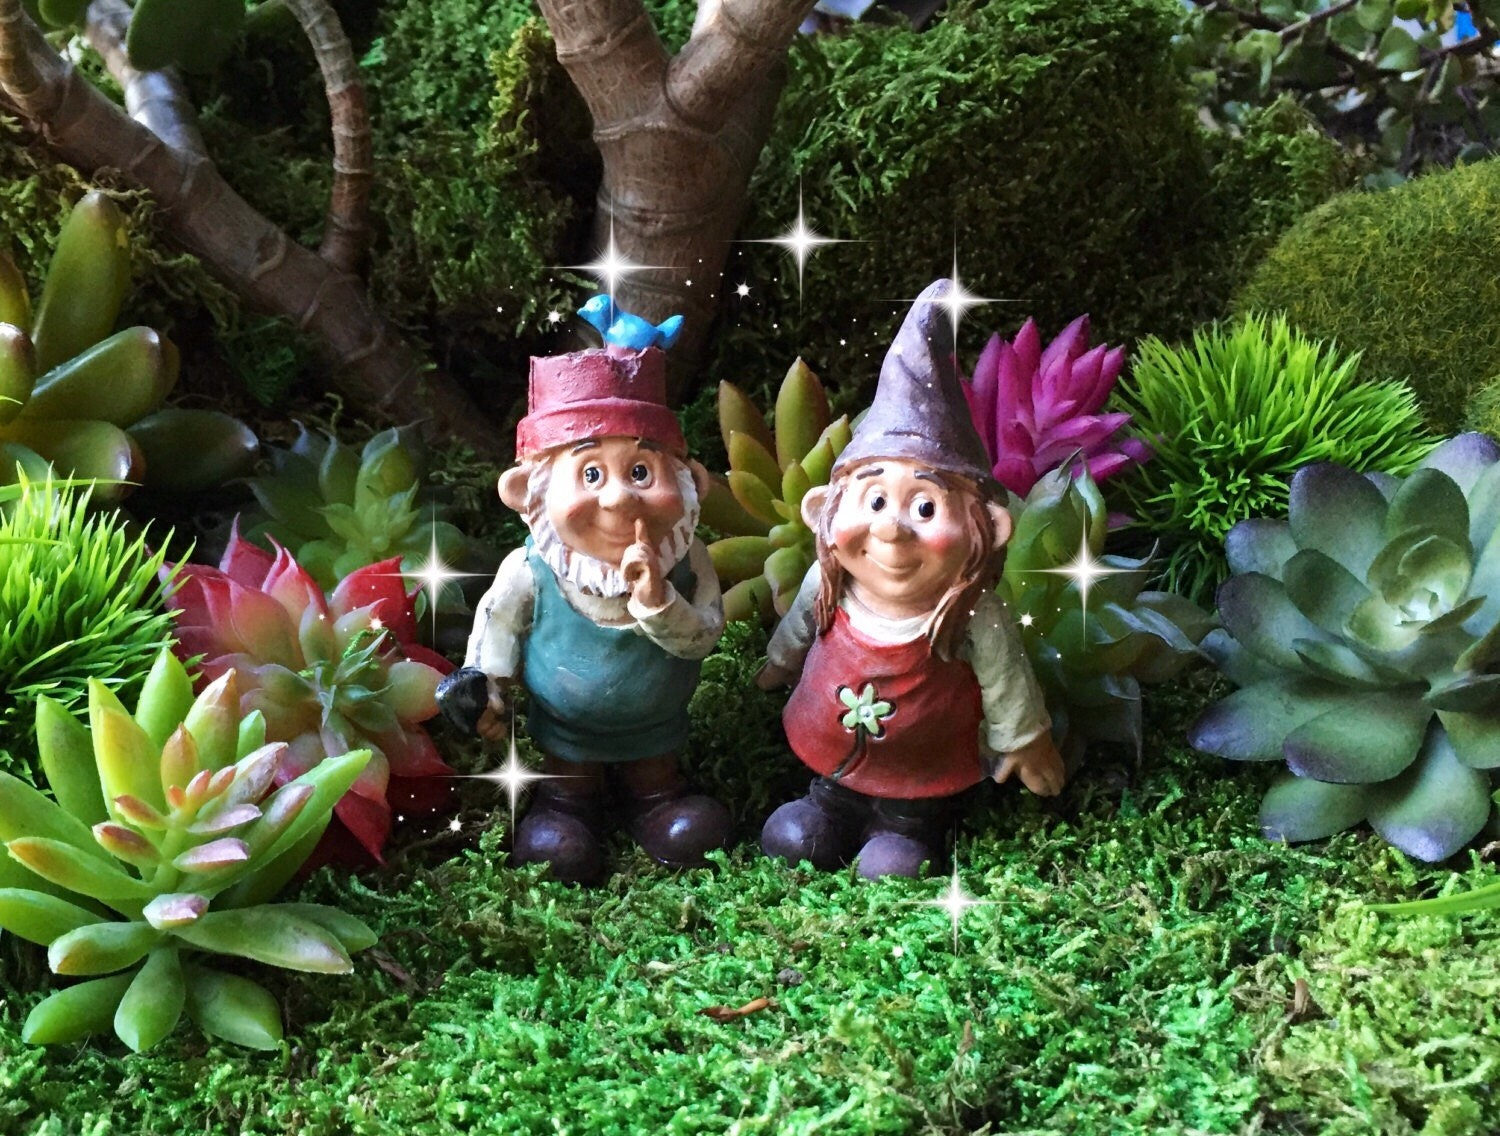 Gnome In Garden: Fairy Garden Gnome Couple Miniature Garden Gnome Miniature